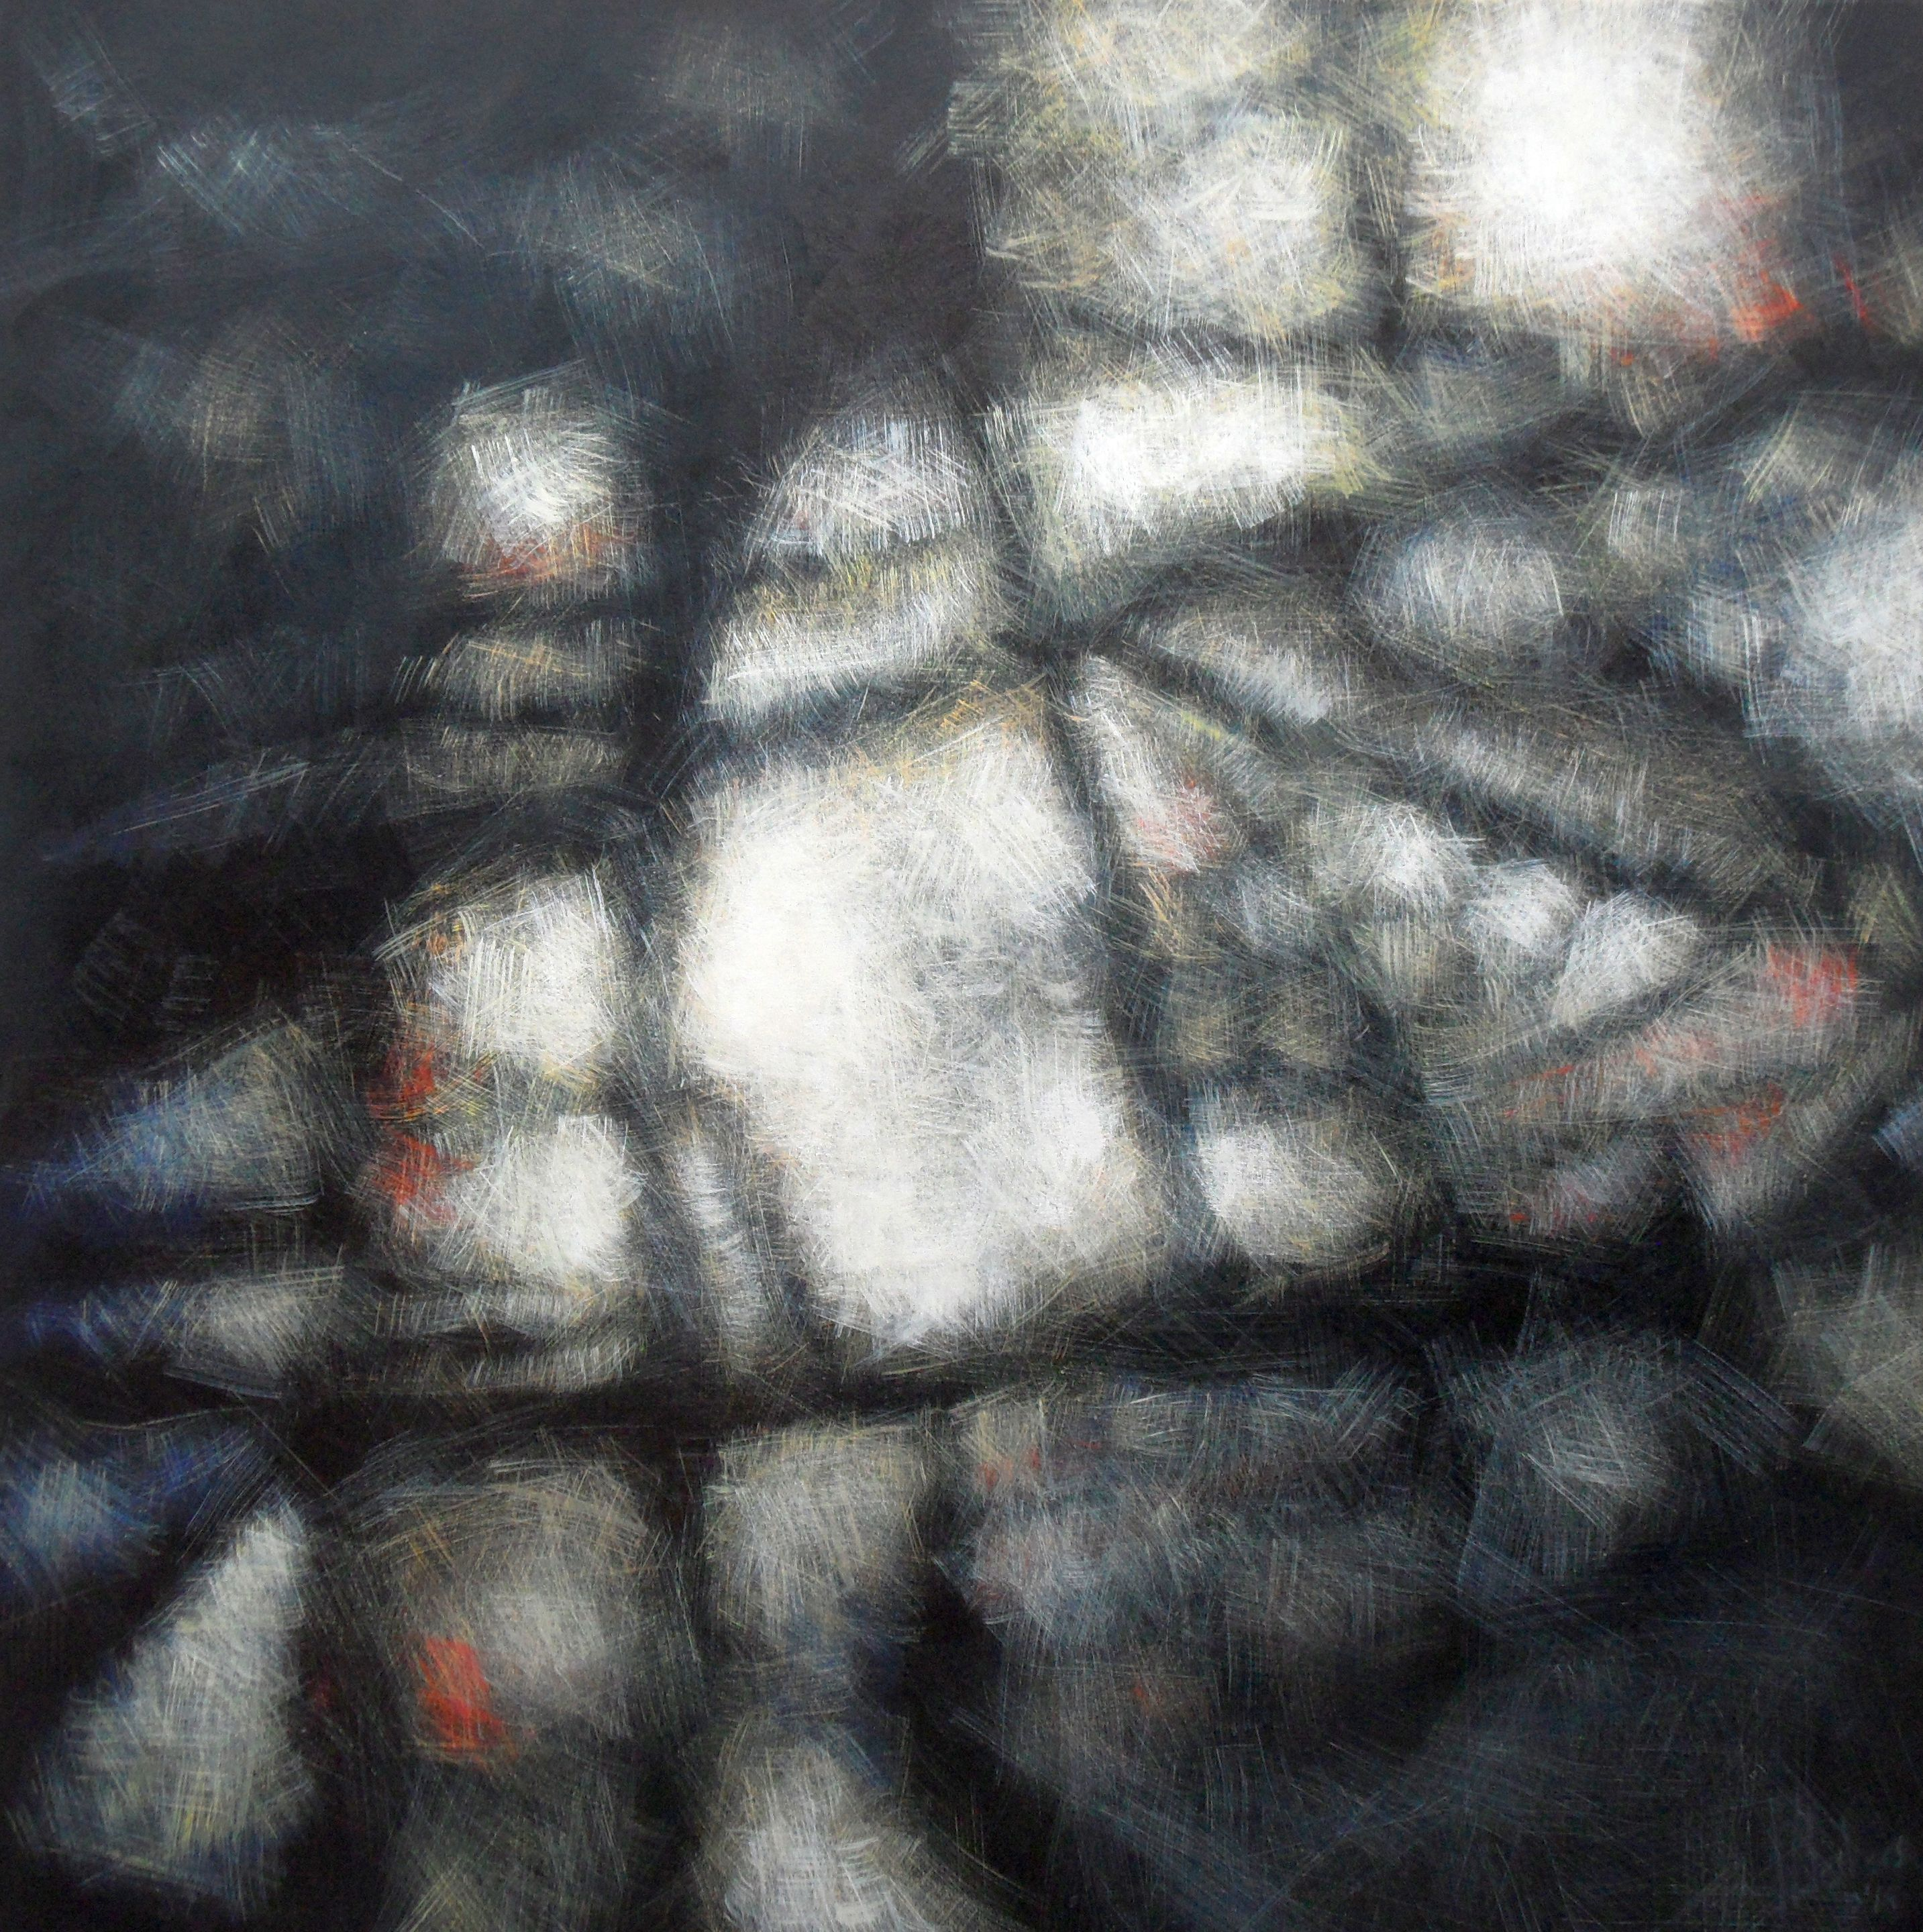 Sunlight Zonlicht willem berkers Oil on canvas